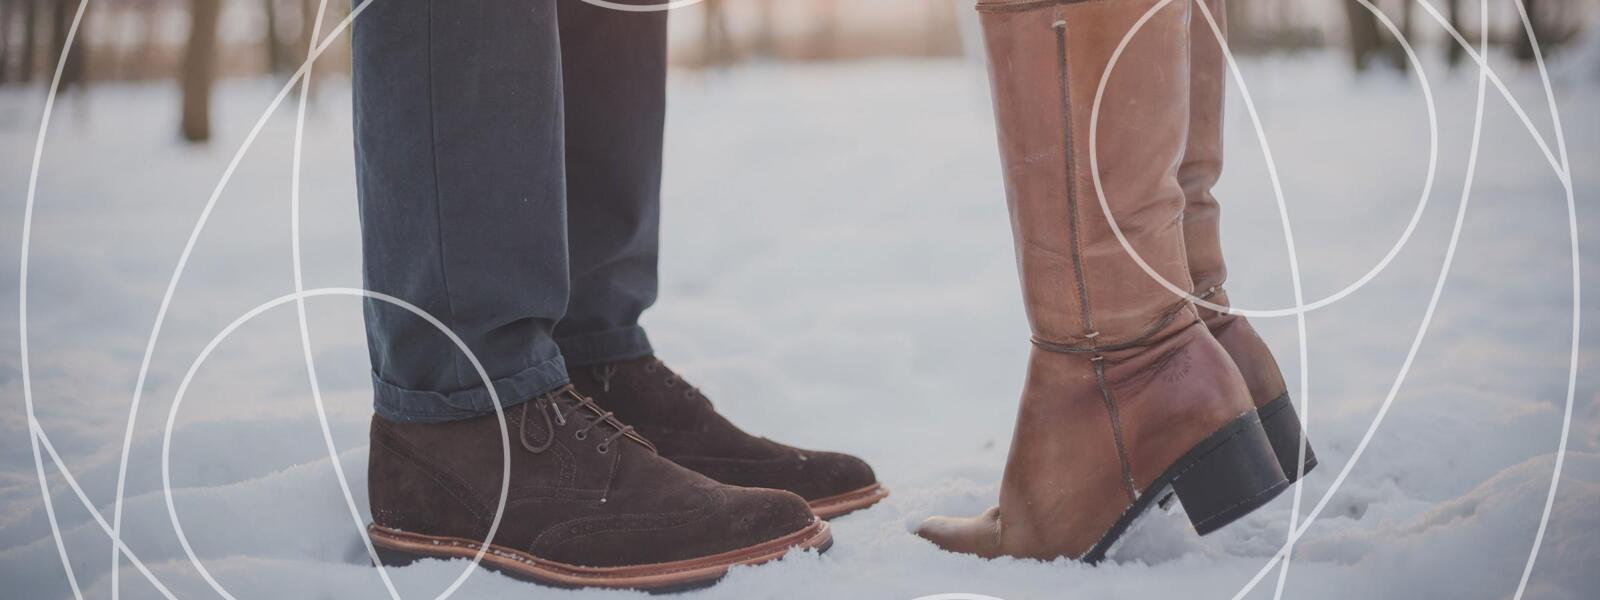 Man's brown boots stand across from woman's brown boots in snow. Woman is on tip toes. Implying a kissing couple up top.